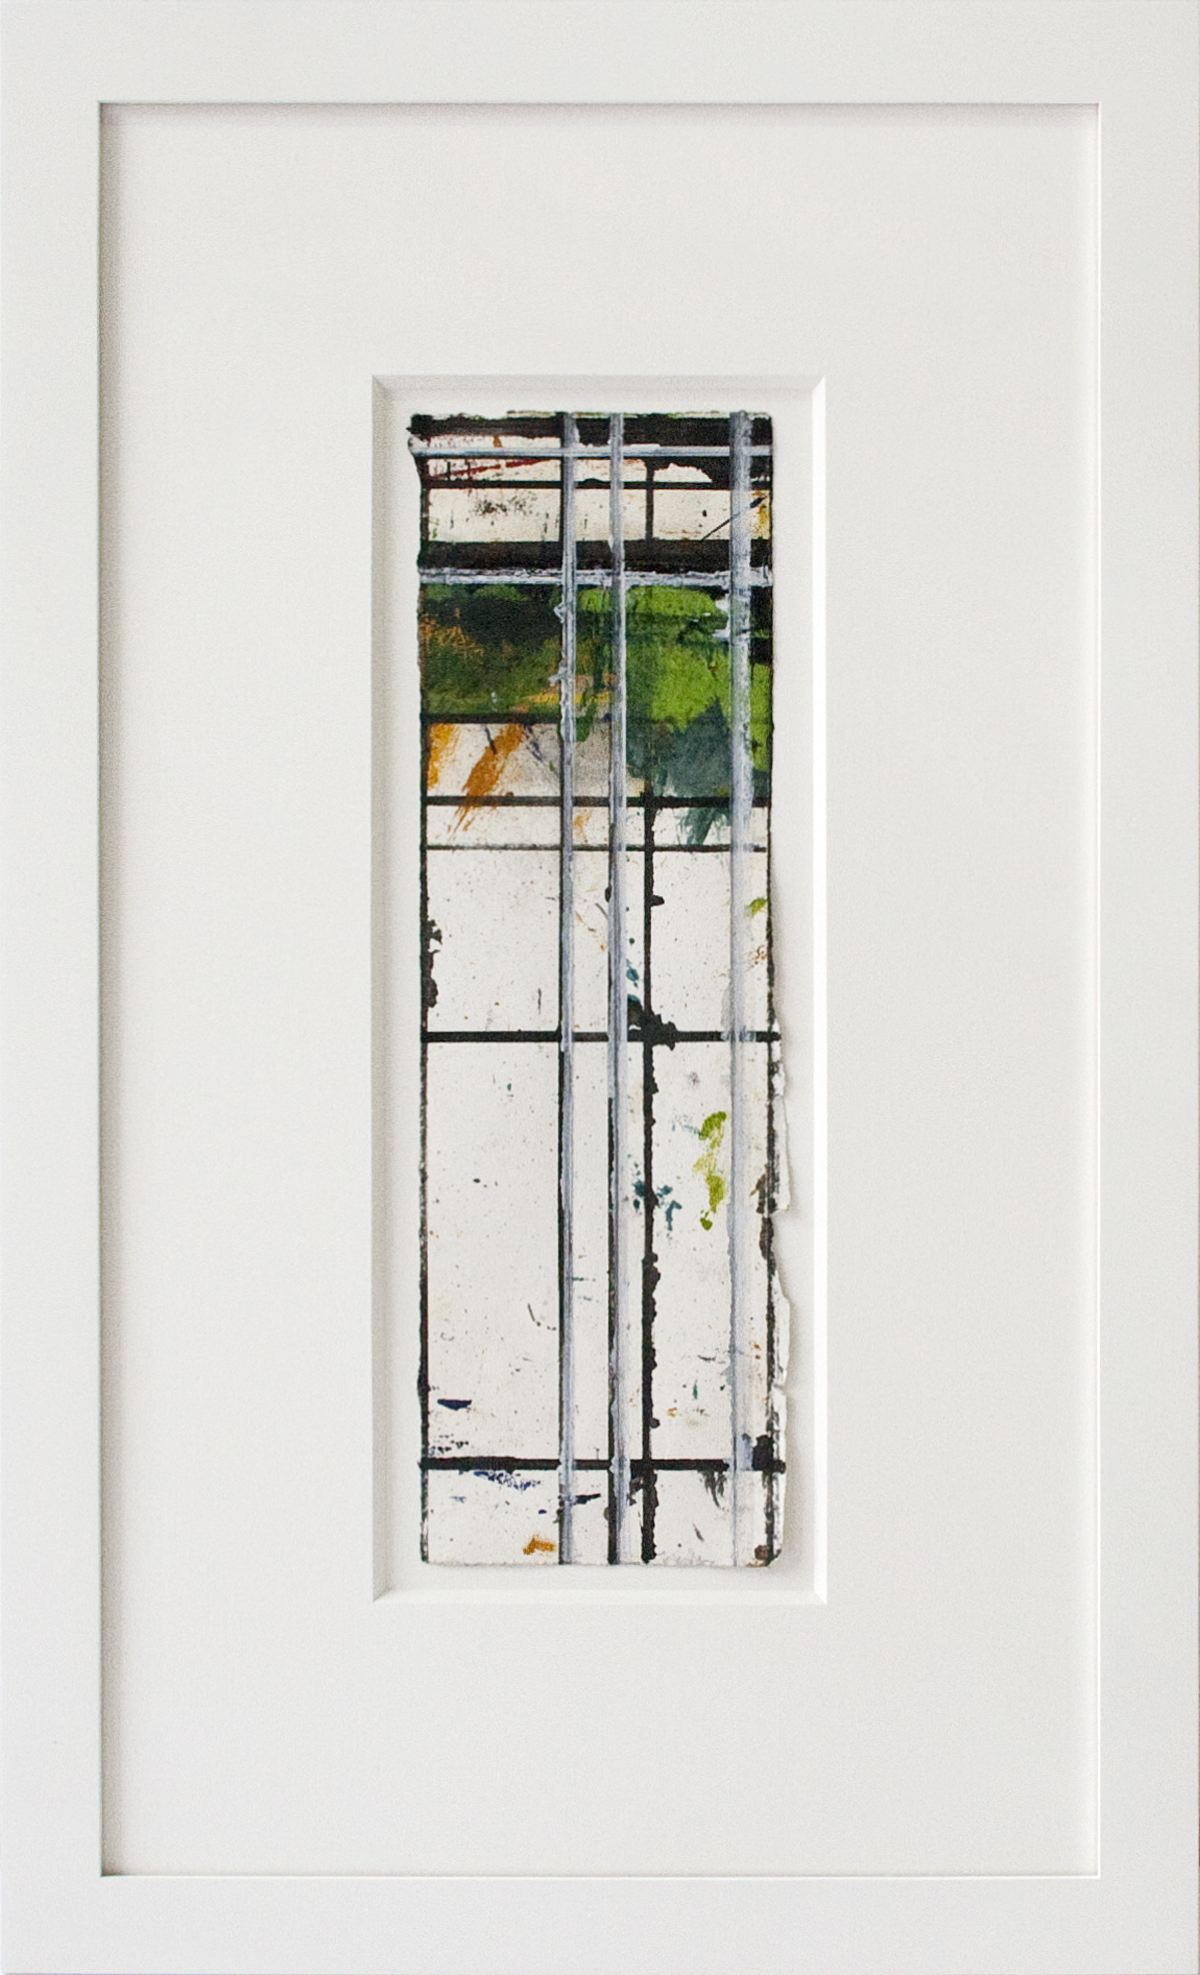 Brice Marden Masking Drawing #6 1984 oil and ink on paper 14 3/4 x 4 1/2 inches